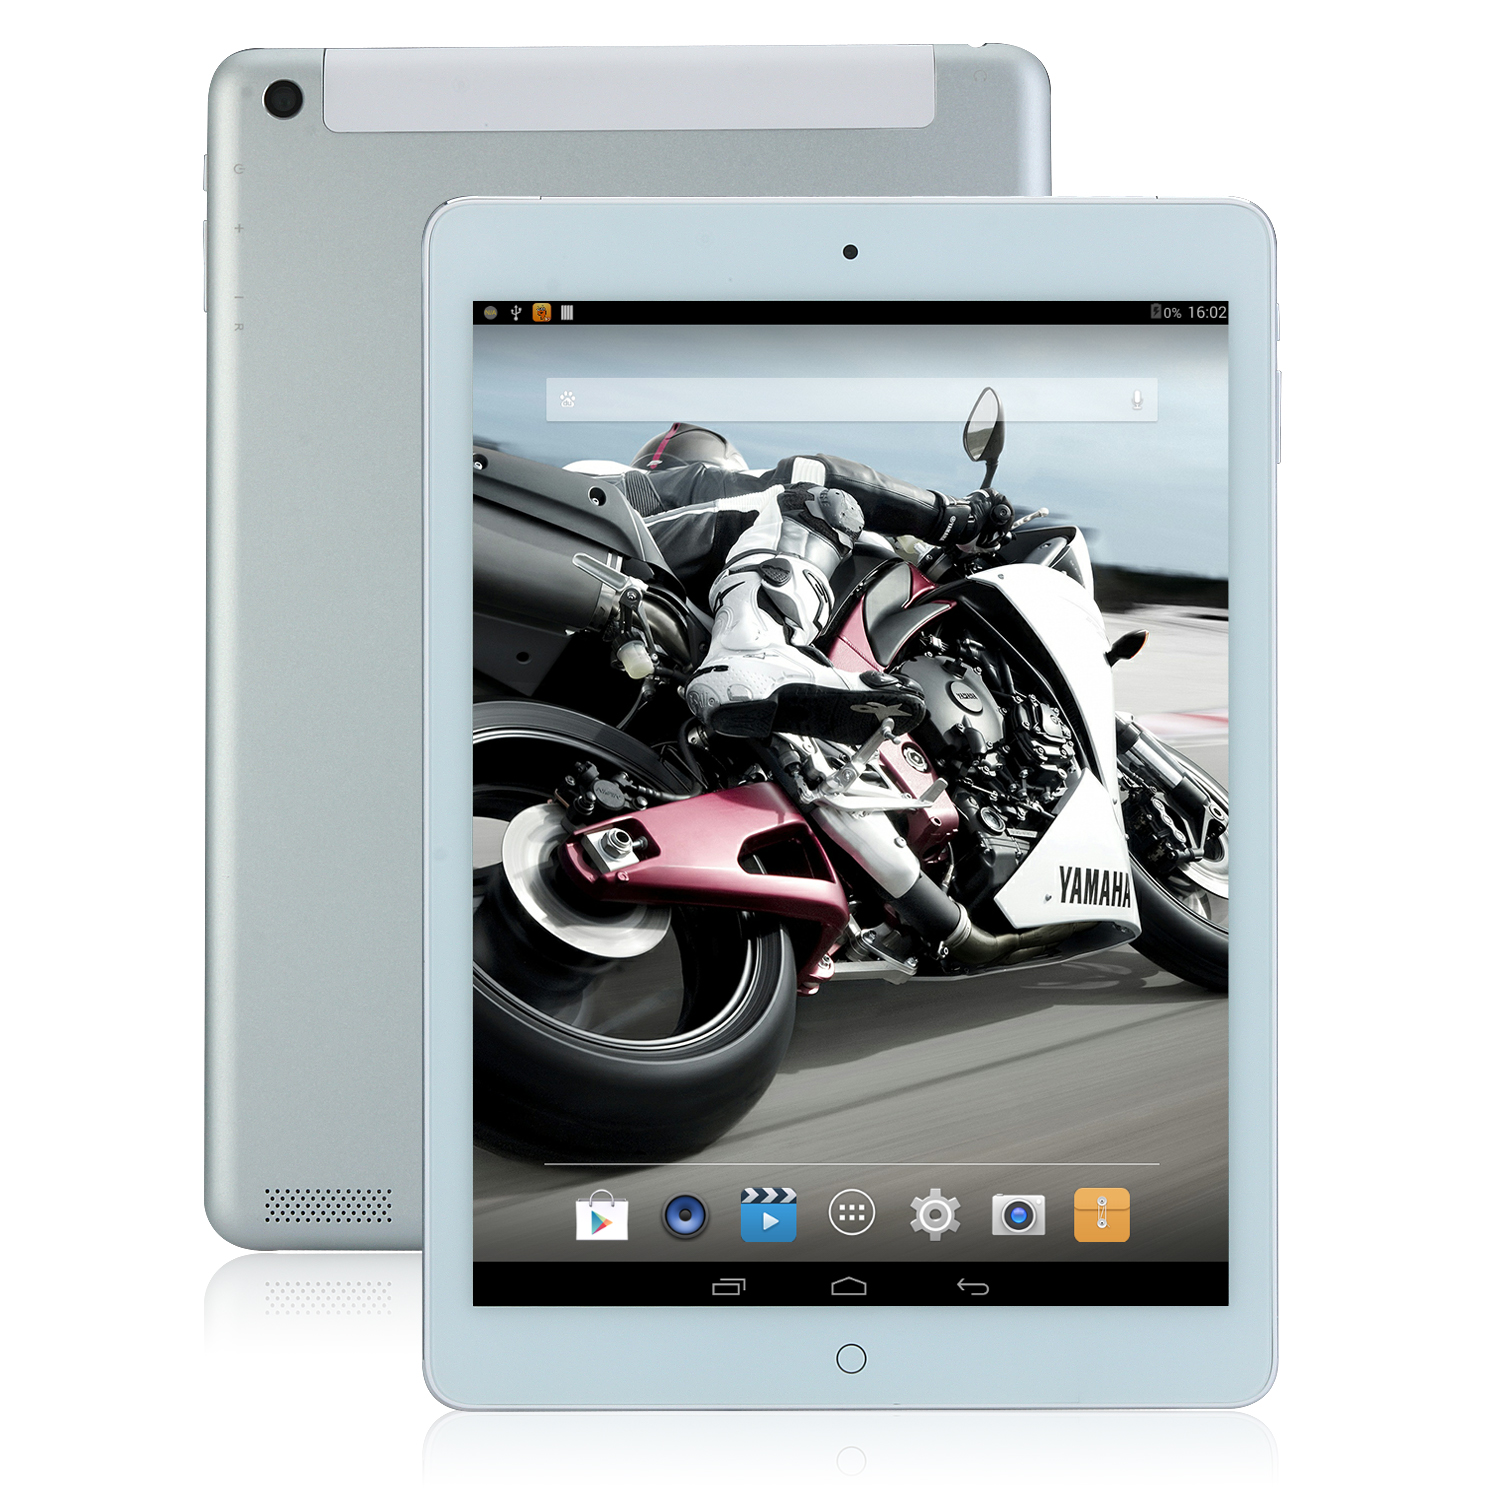 SOSOON X98 WiFi Tablet PC 9.7 Inch Quad Core A33 Android 4.4 IPS 1GB 16GB Silver